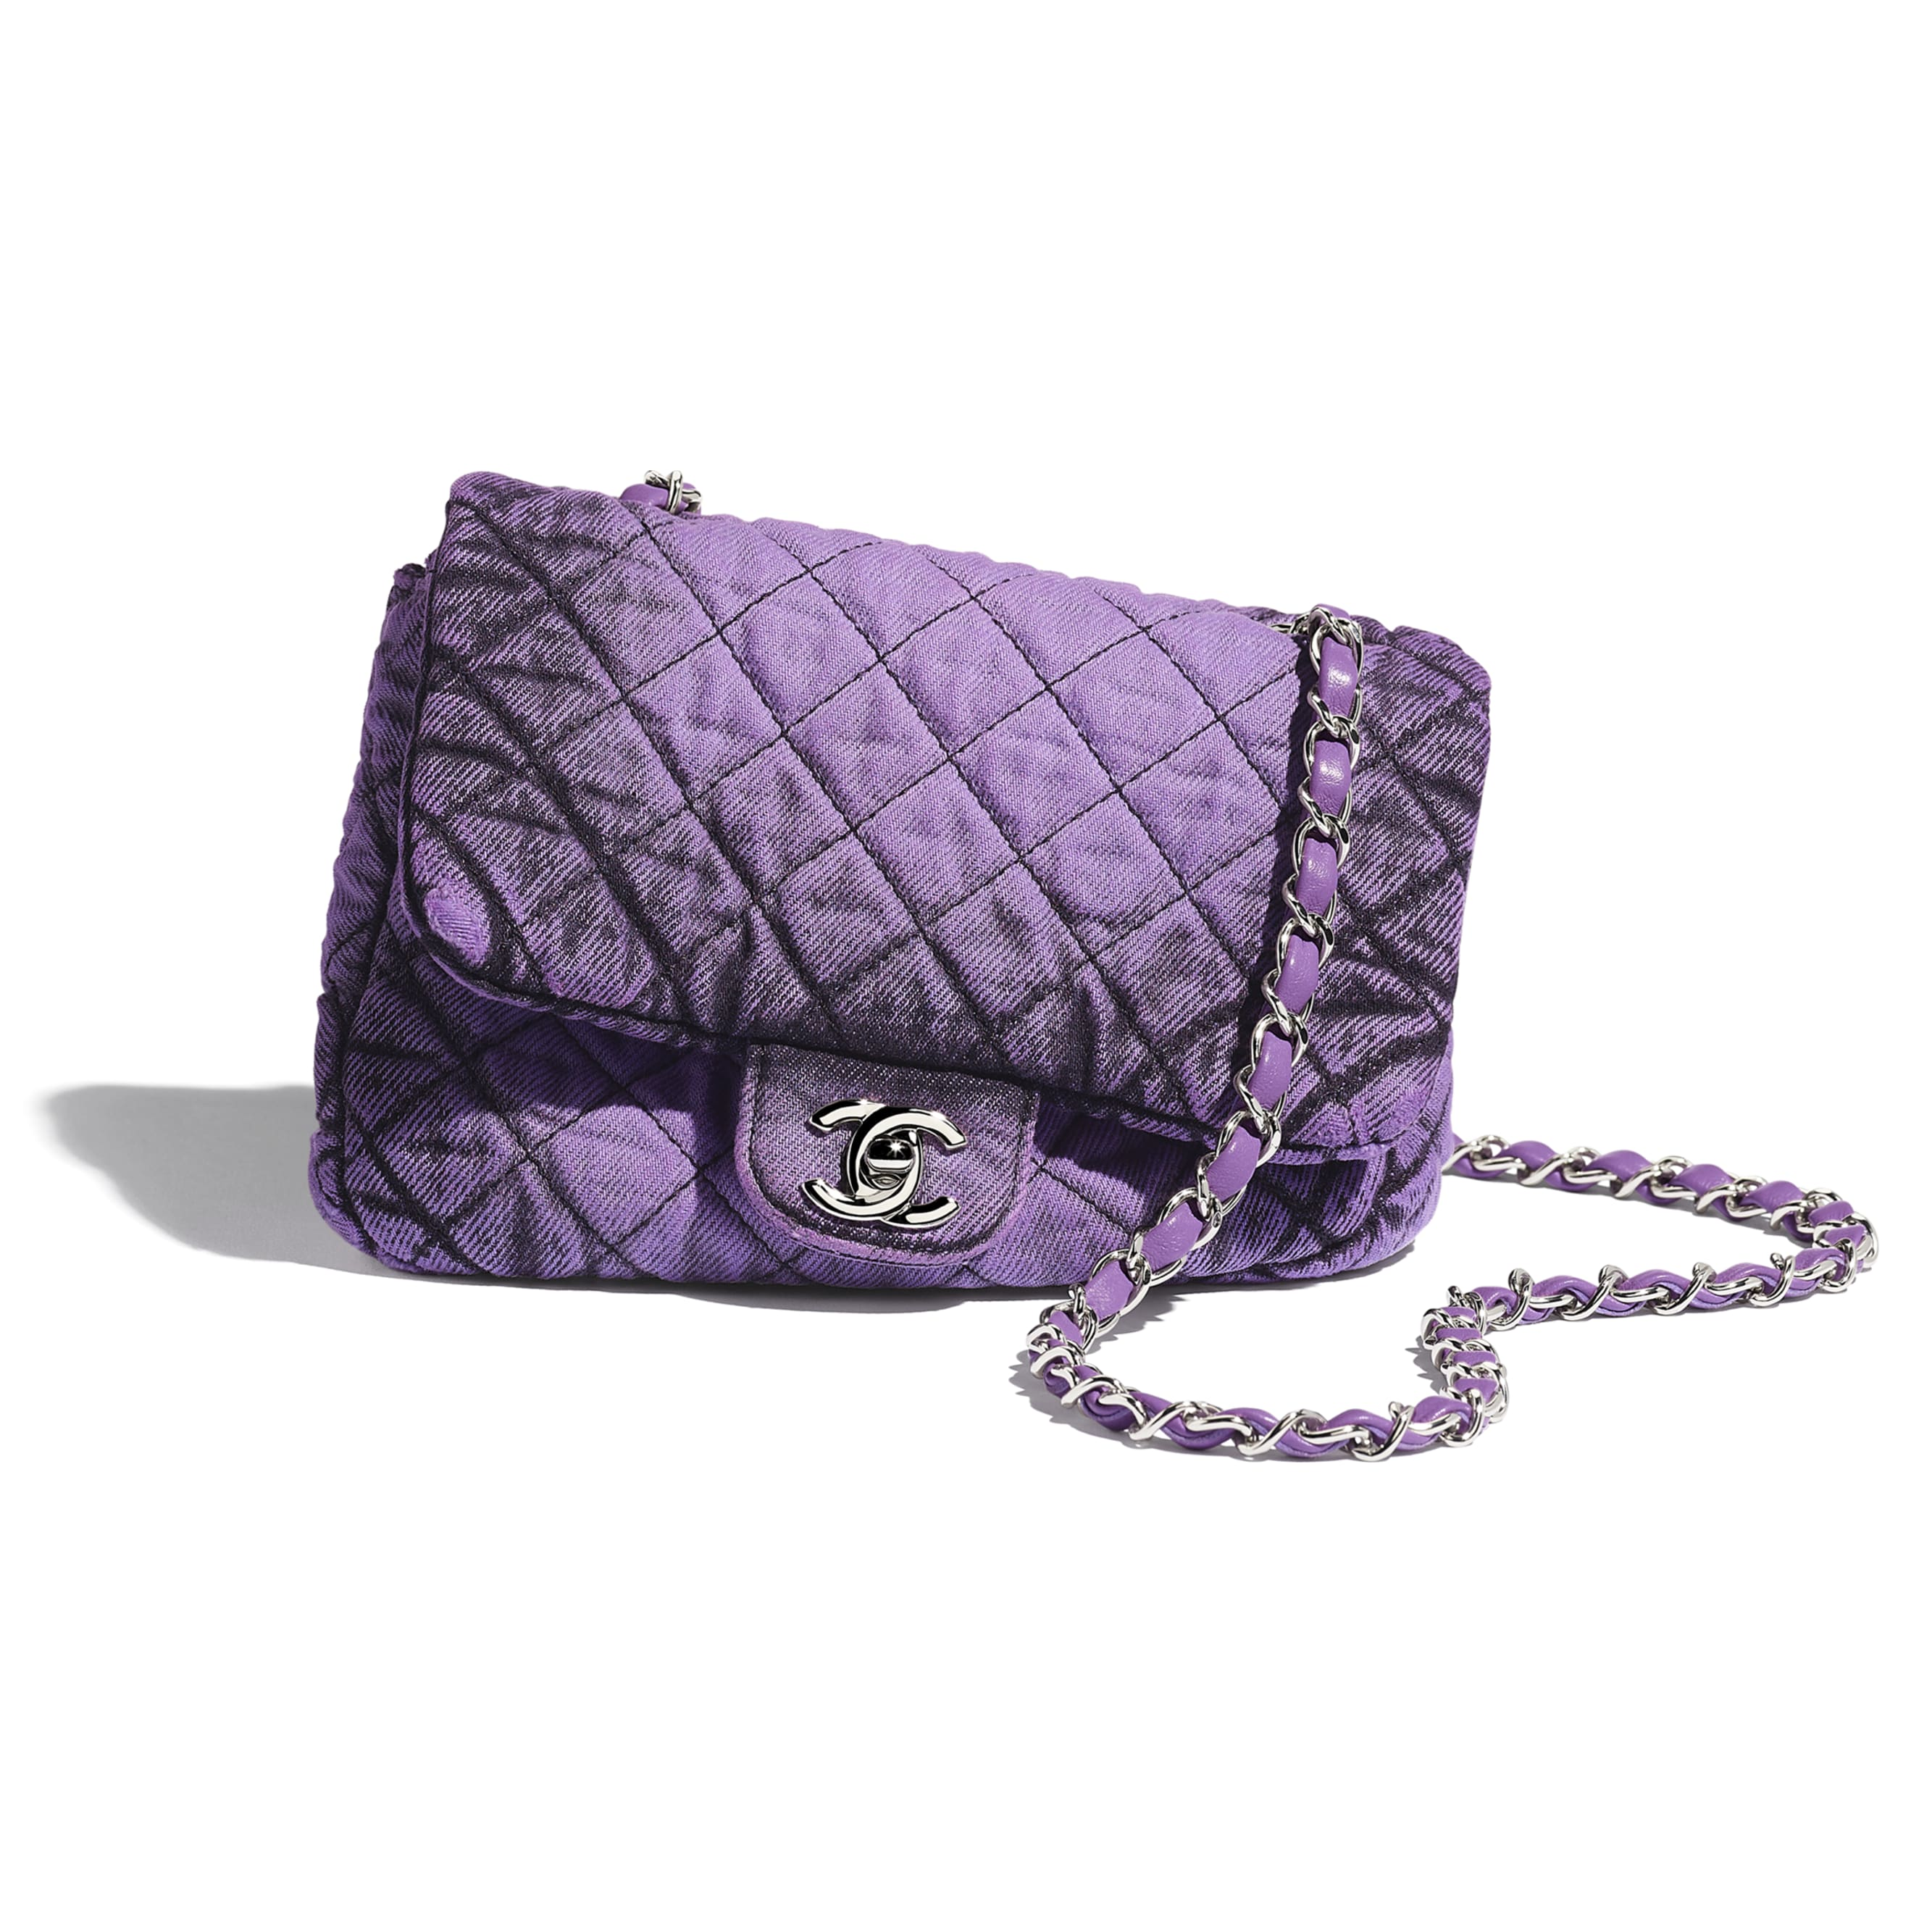 Small Flap Bag - Purple & Black - Denim & Silver-Tone Metal - Extra view - see standard sized version